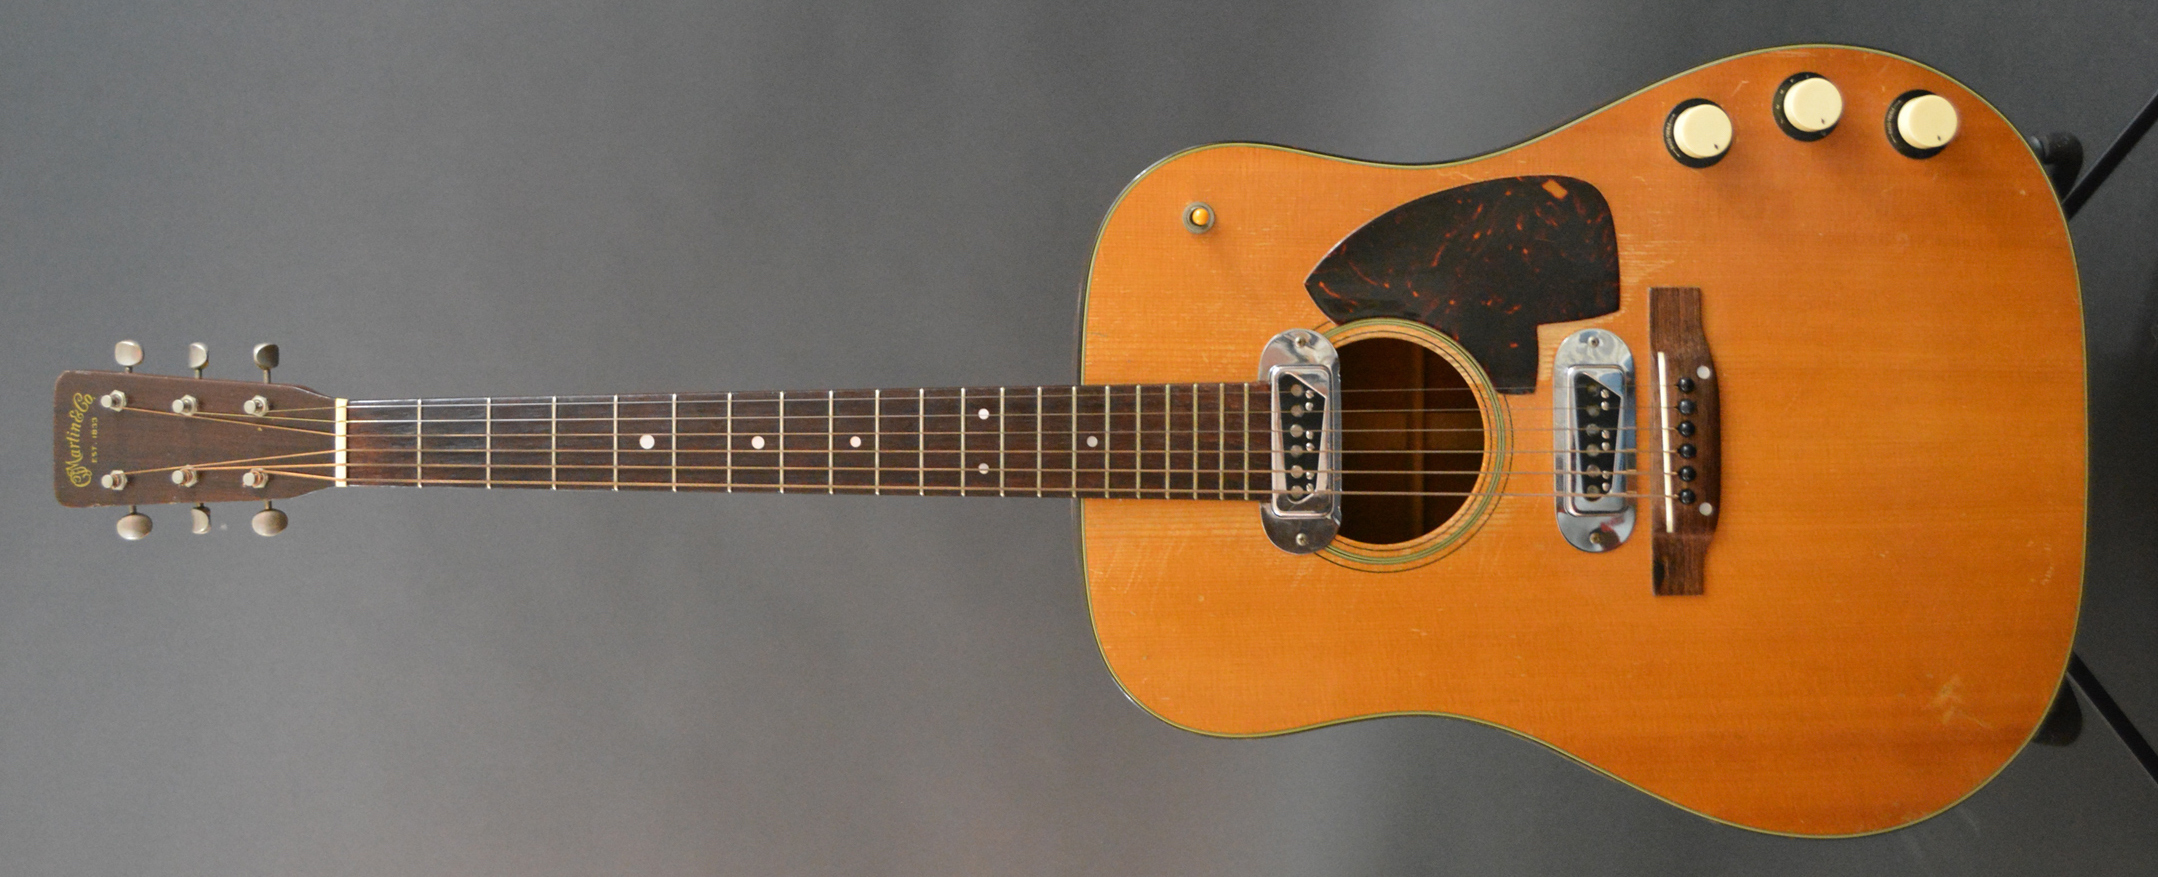 59-martin-front